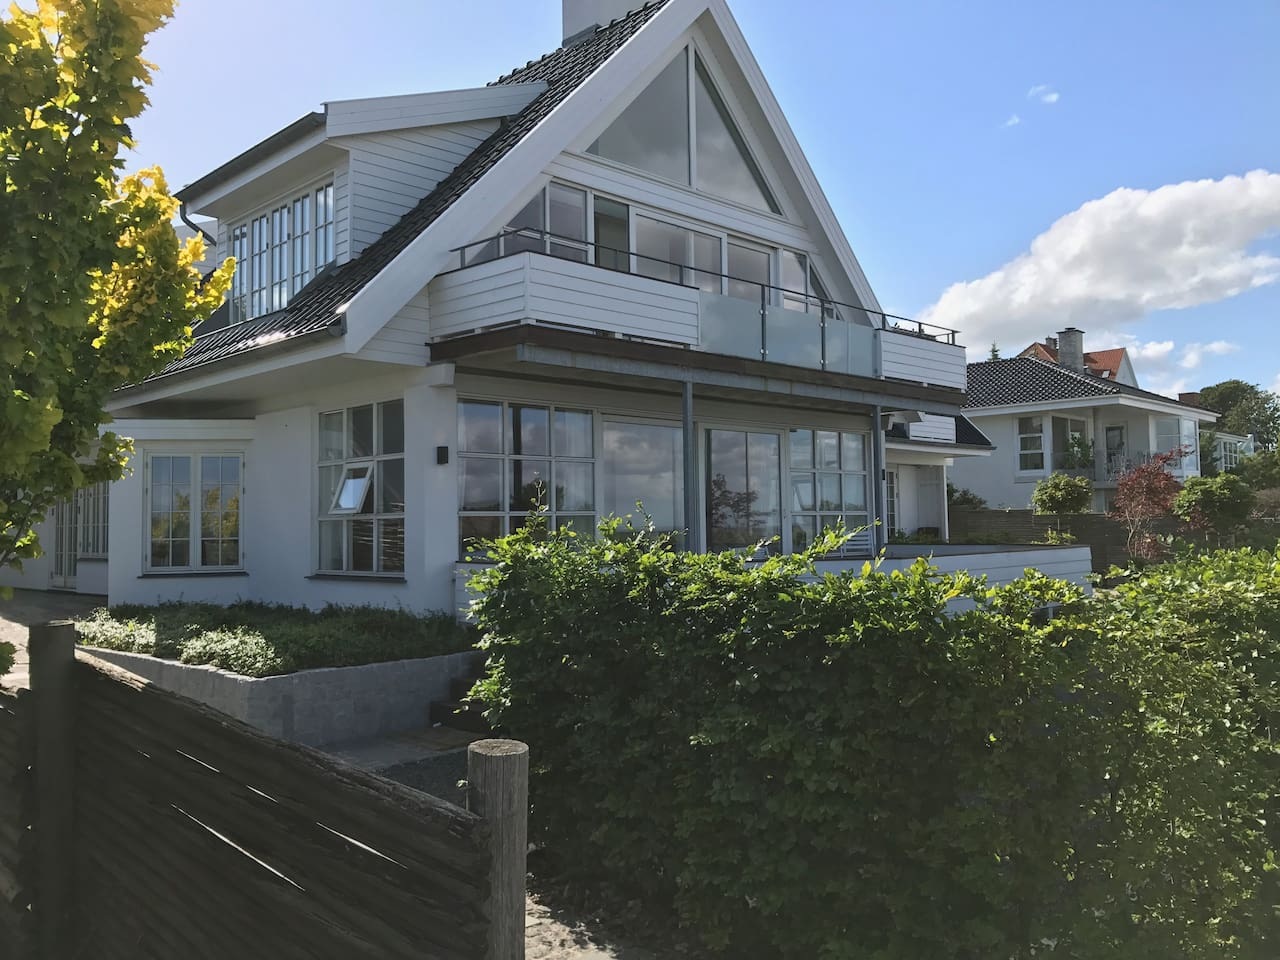 Uniqe apartment by Øresund overlooking Ven and Sweden